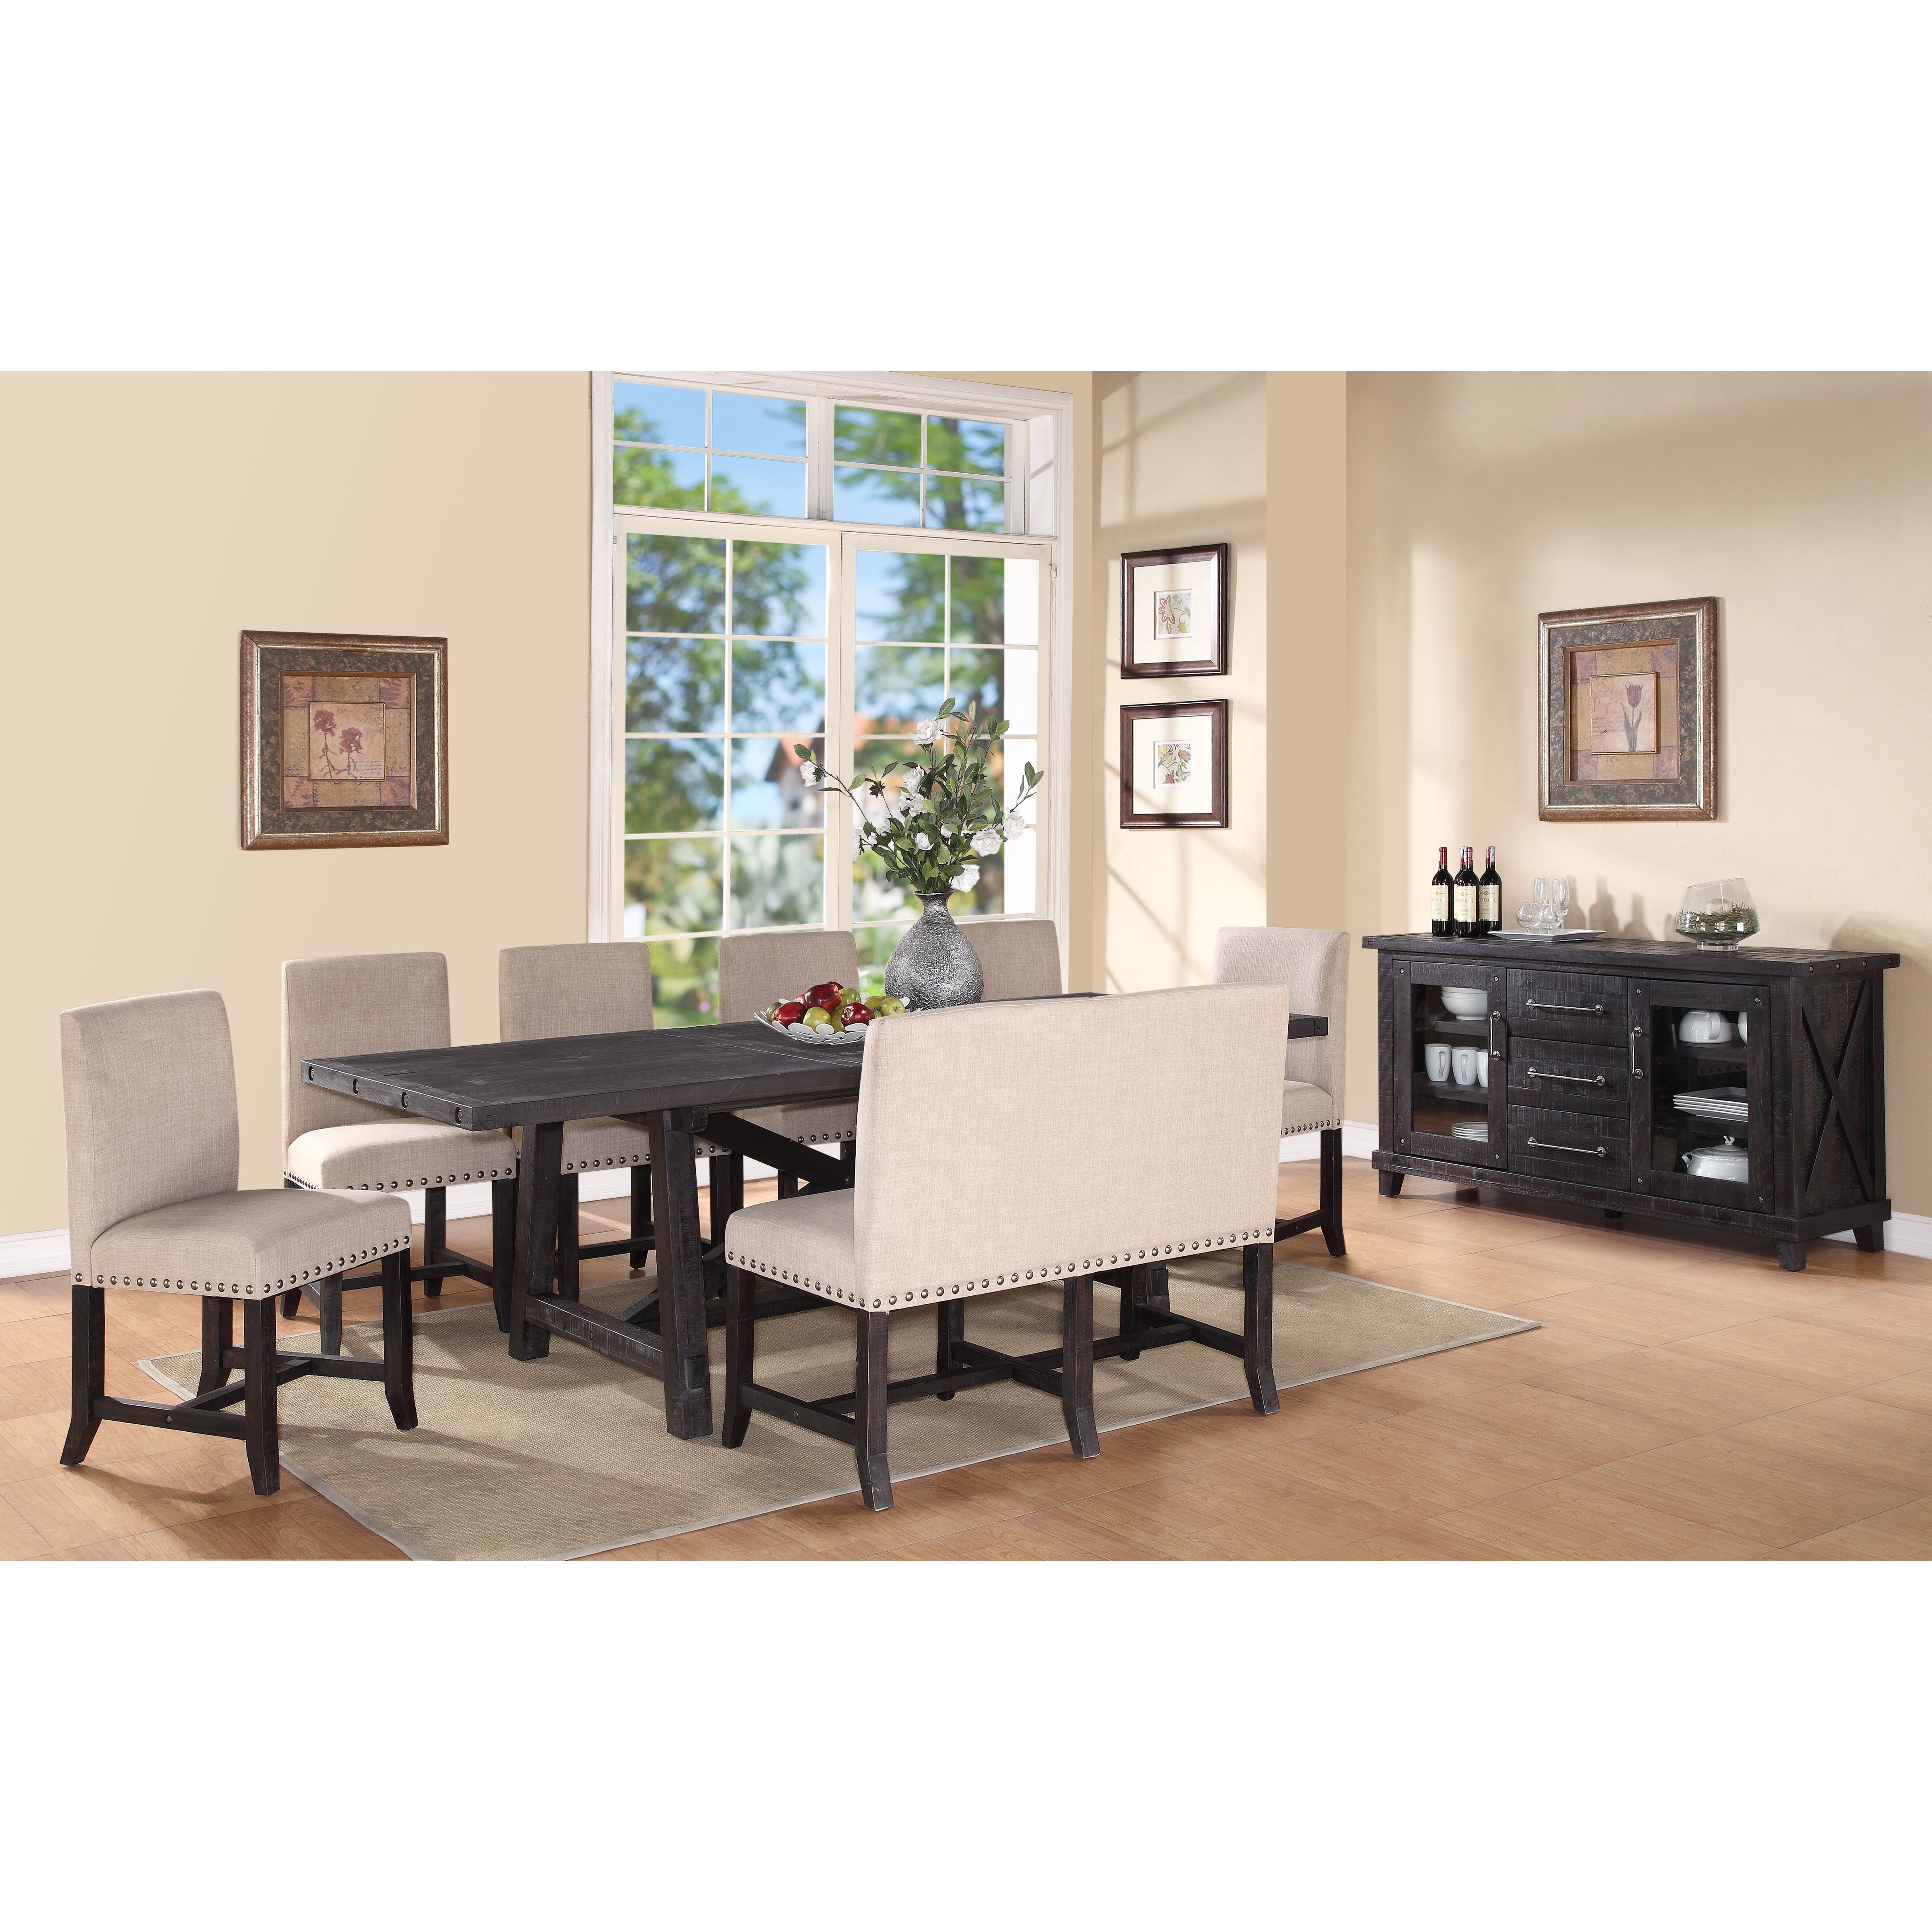 Trent austin design del rio 8 piece dining set reviews wayfair - Dining room sets austin tx ...